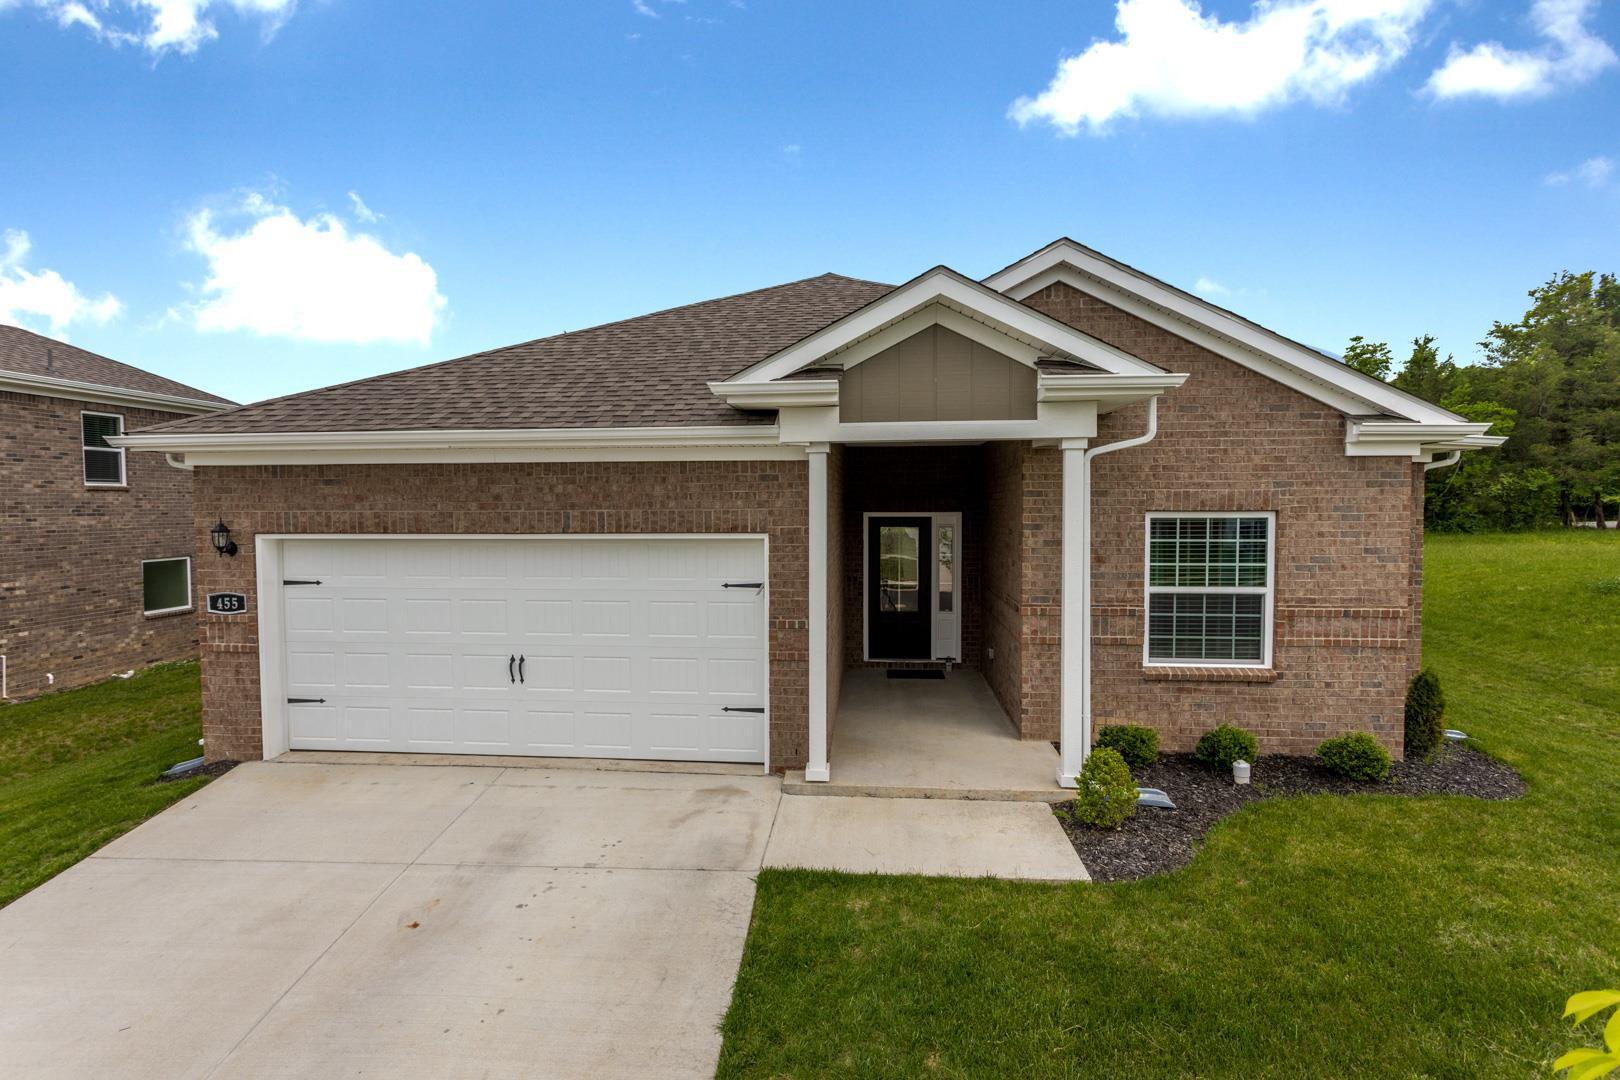 455 Bryce Canyon Way, Gallatin in Sumner County County, TN 37066 Home for Sale